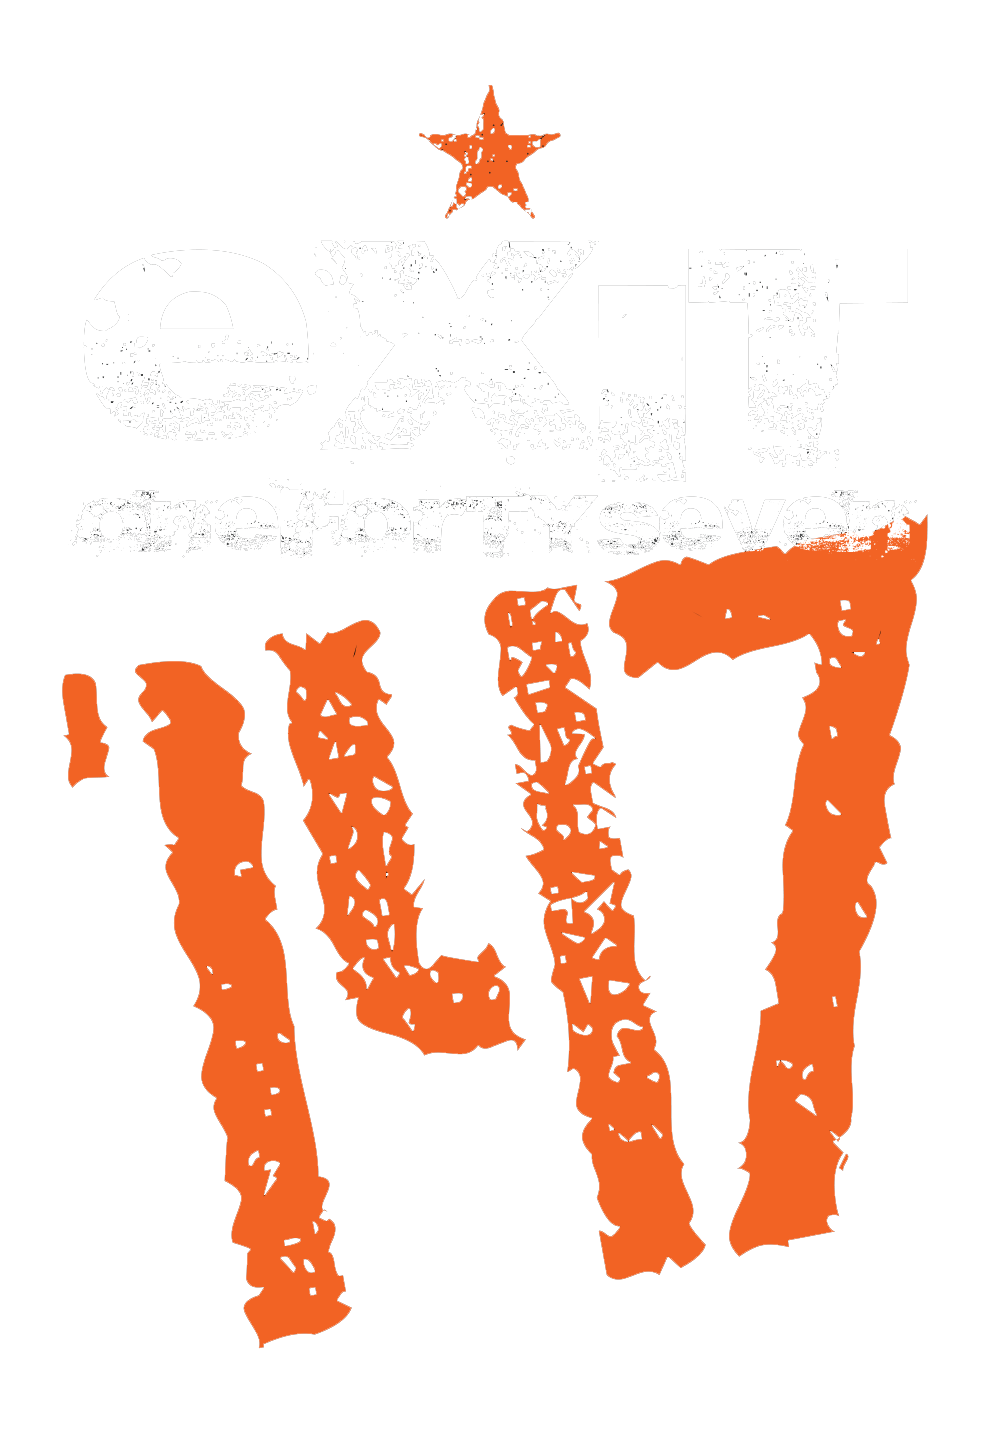 Exit 147 Vertical Logo - Transparent